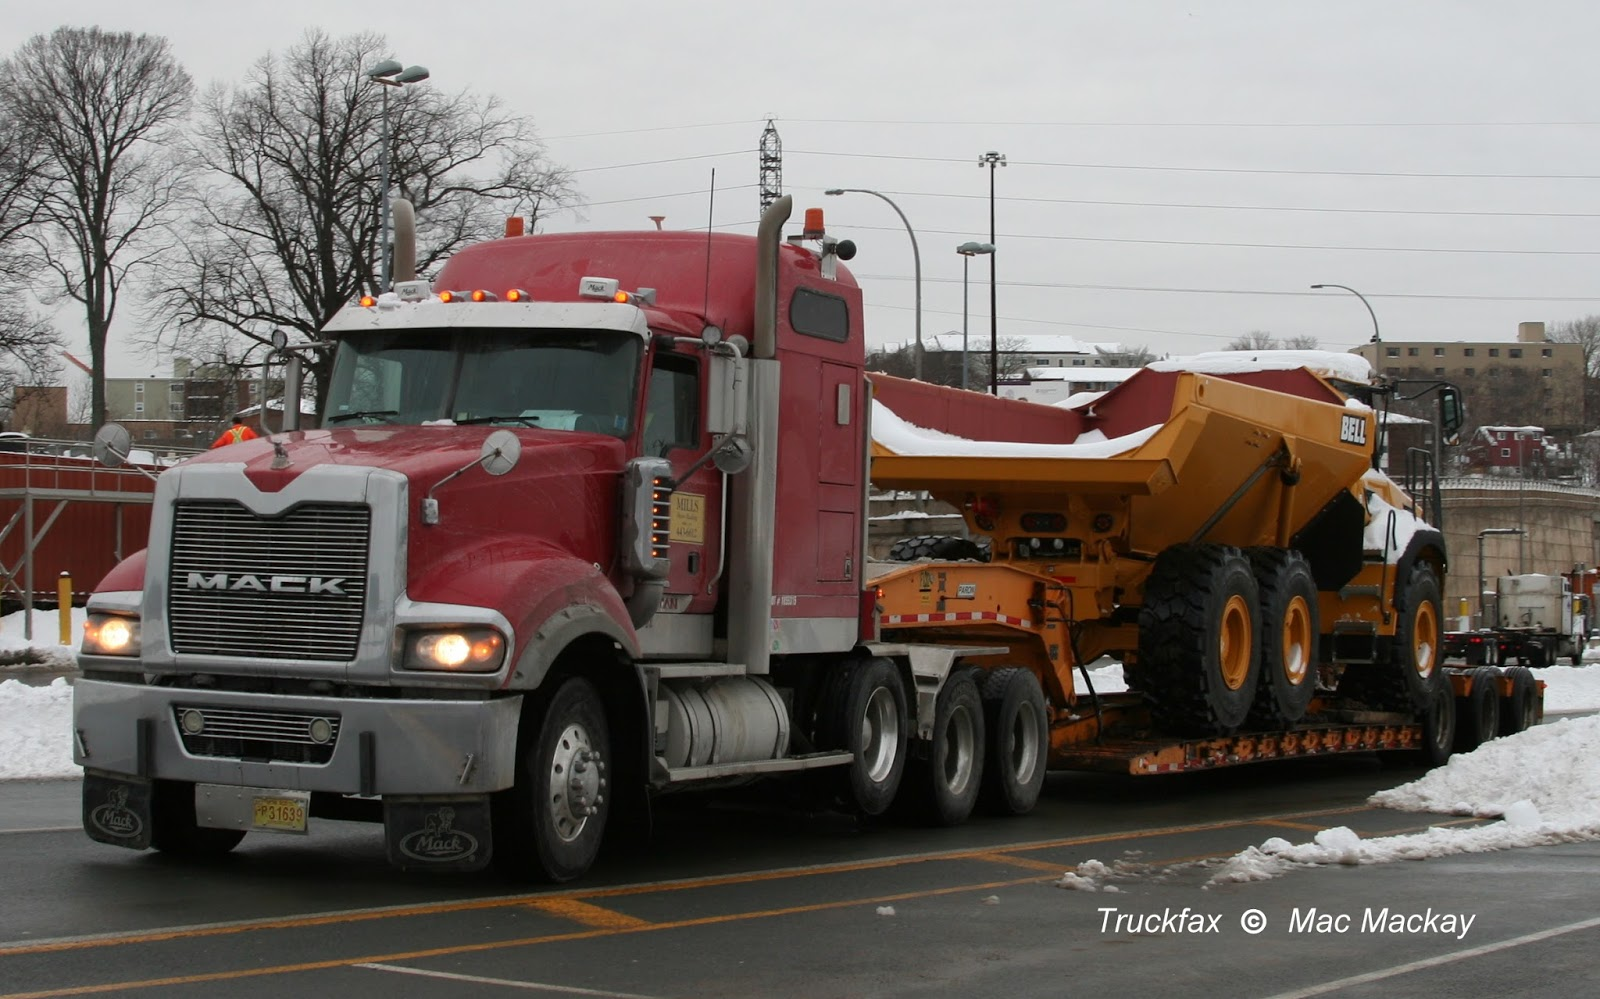 medium resolution of mills big mack titan and paron trailer was on the road today hauling one of the imported bell articulated off road dump trucks this one a b30e which